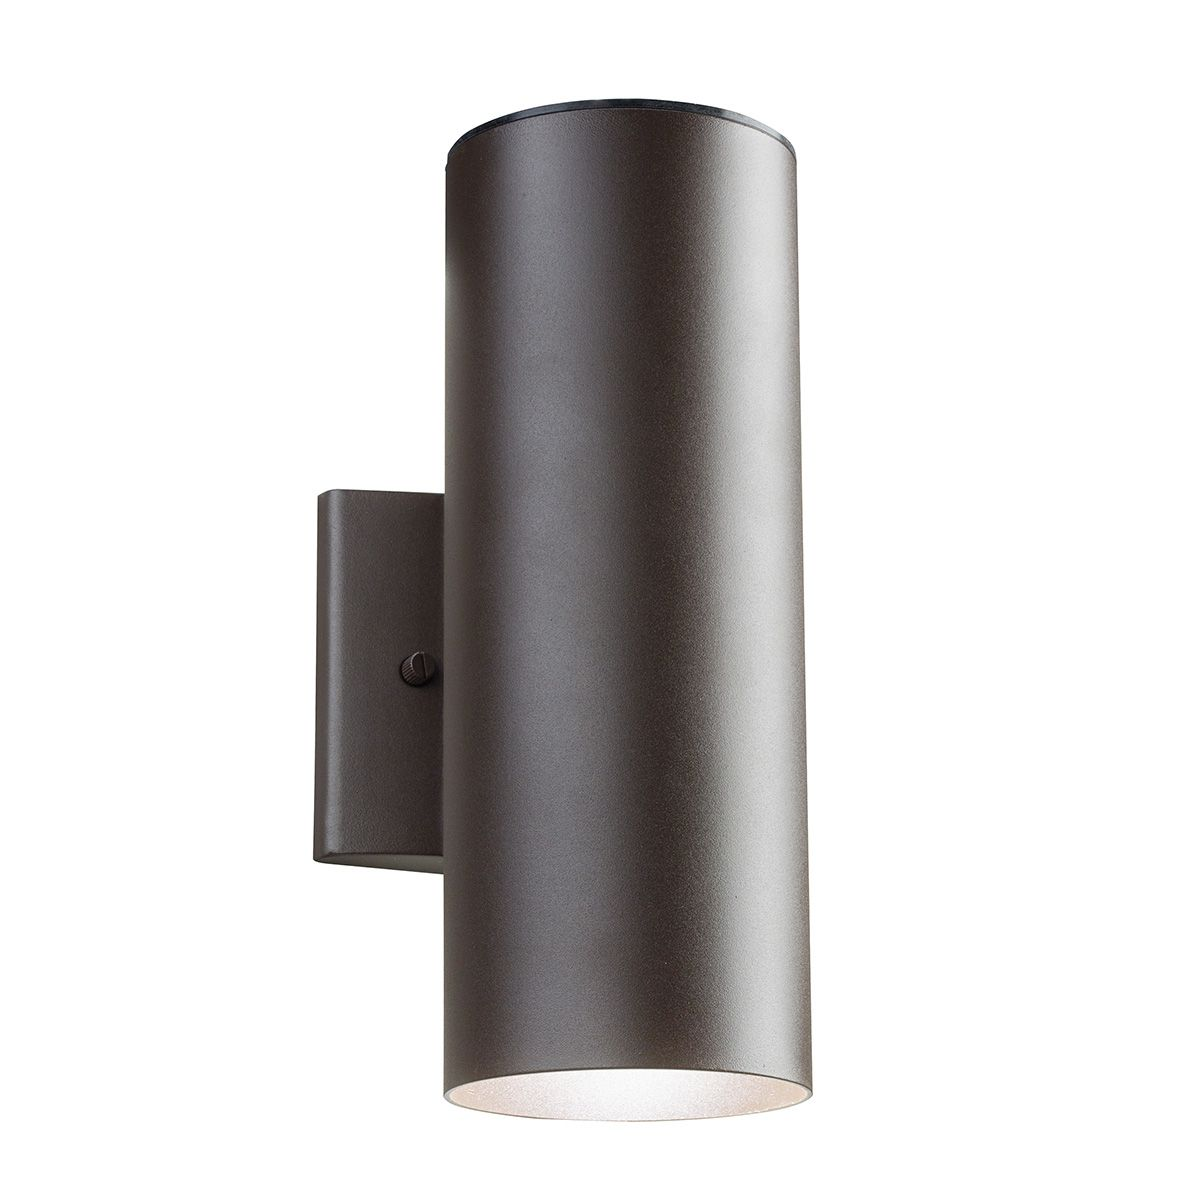 11251 Outdoor LED Up/Down Wall Sconce features a cylinder with up and down light used to highlight architectural surfaces. Made of cast aluminum with powder coat finish in Textured Architectural Bronze or Textured Black finish and polycarbonate top shield. Includes one 5 watt LED uplight and one 10 watt LED downlight totaling 15 watts with Pure White 3000K, 905CRI color temperature and LED driver. 40,000 hour average lamp life. 4.5 inch width x 12.25 inch height x 6.5 inch depth. UL listed…